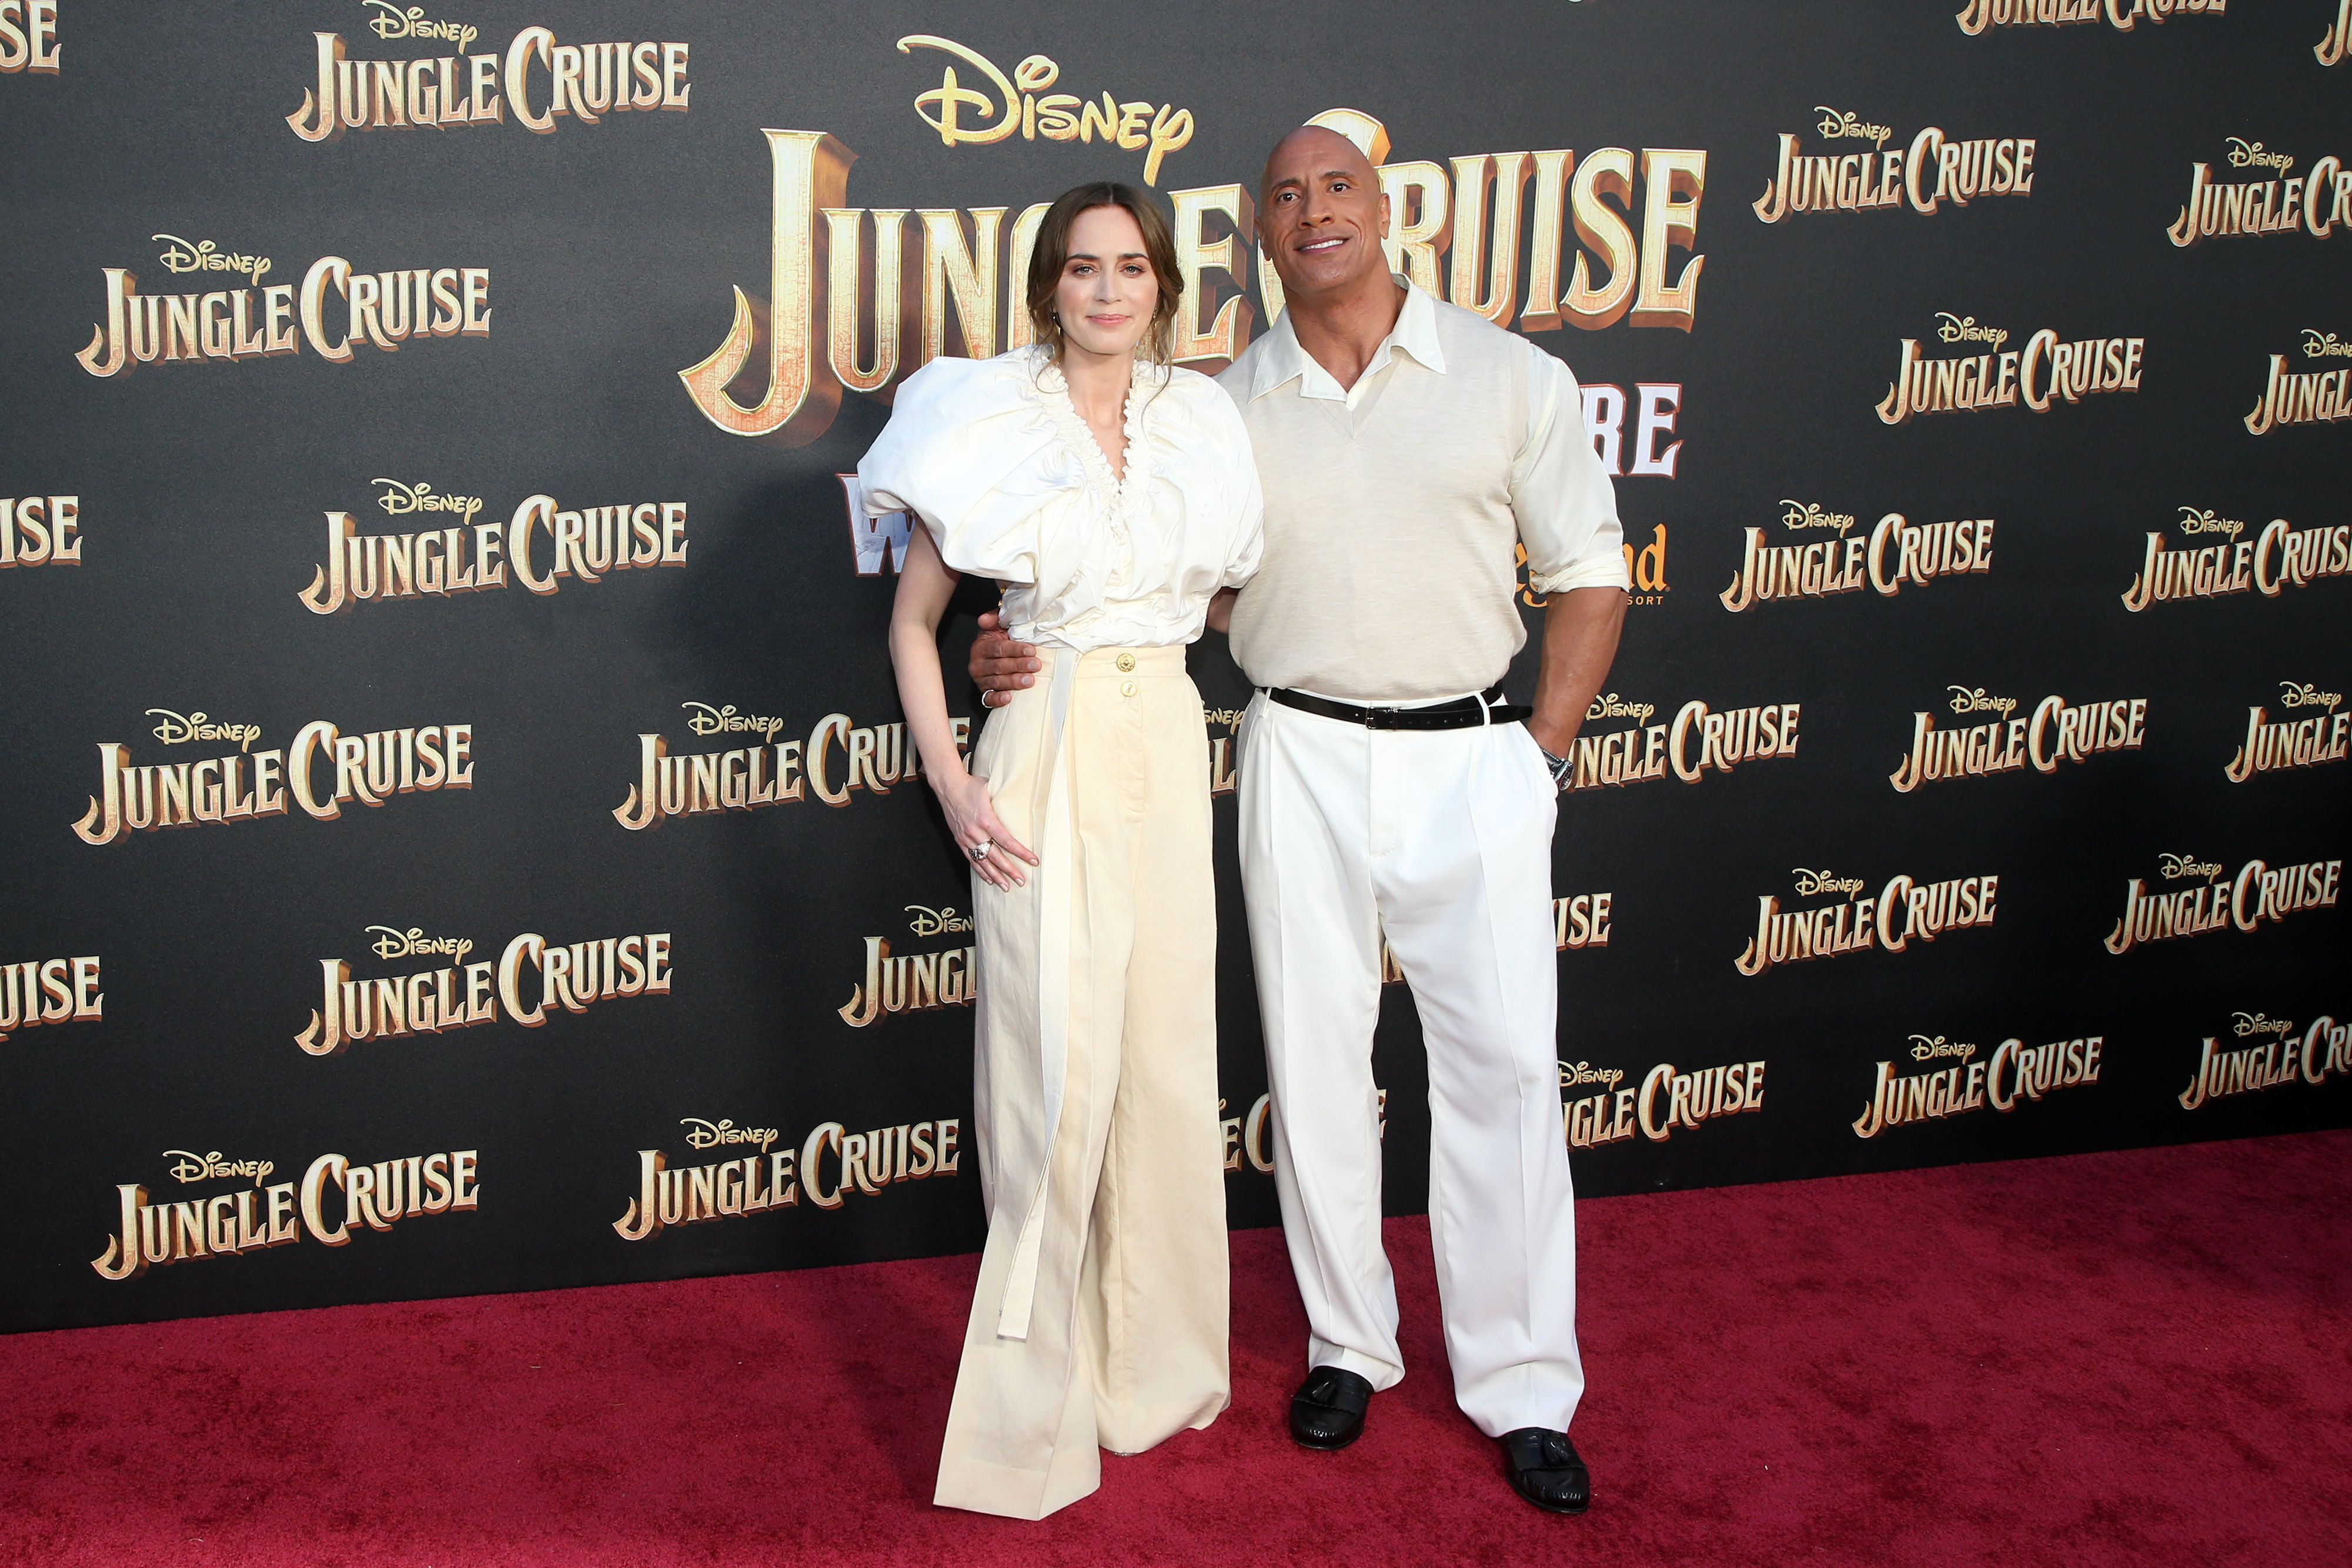 Emily Blunt and Dwayne 'The Rock' Johnson wear tan and white two-pieces on the red carpet.